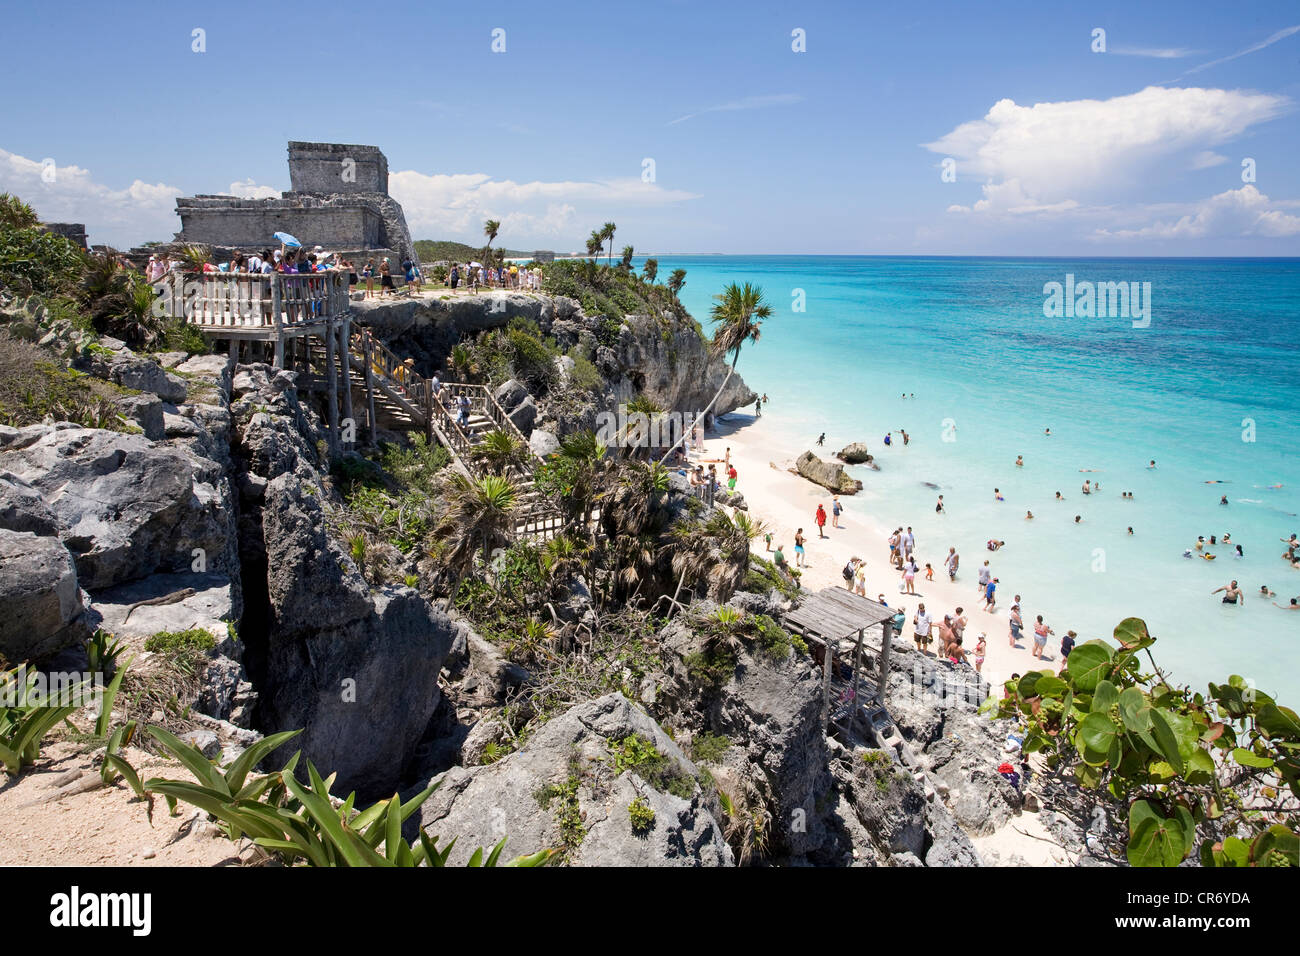 People on the beach at the Mayan ruins of Tulum, State of Quintana Roo, Mexico, North America - Stock Image